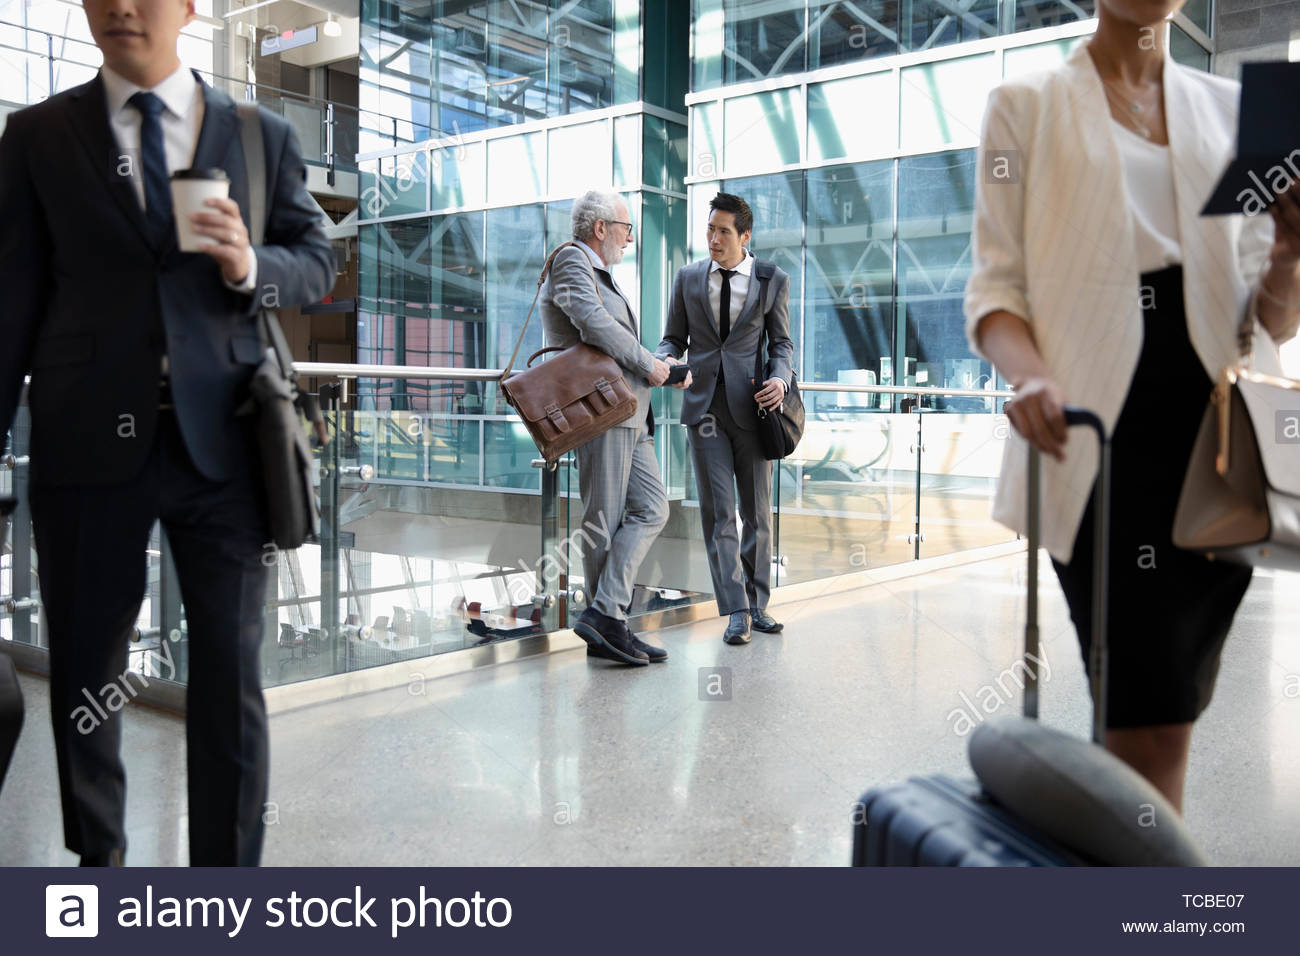 Businessmen with suitcases talking in airport - Stock Image